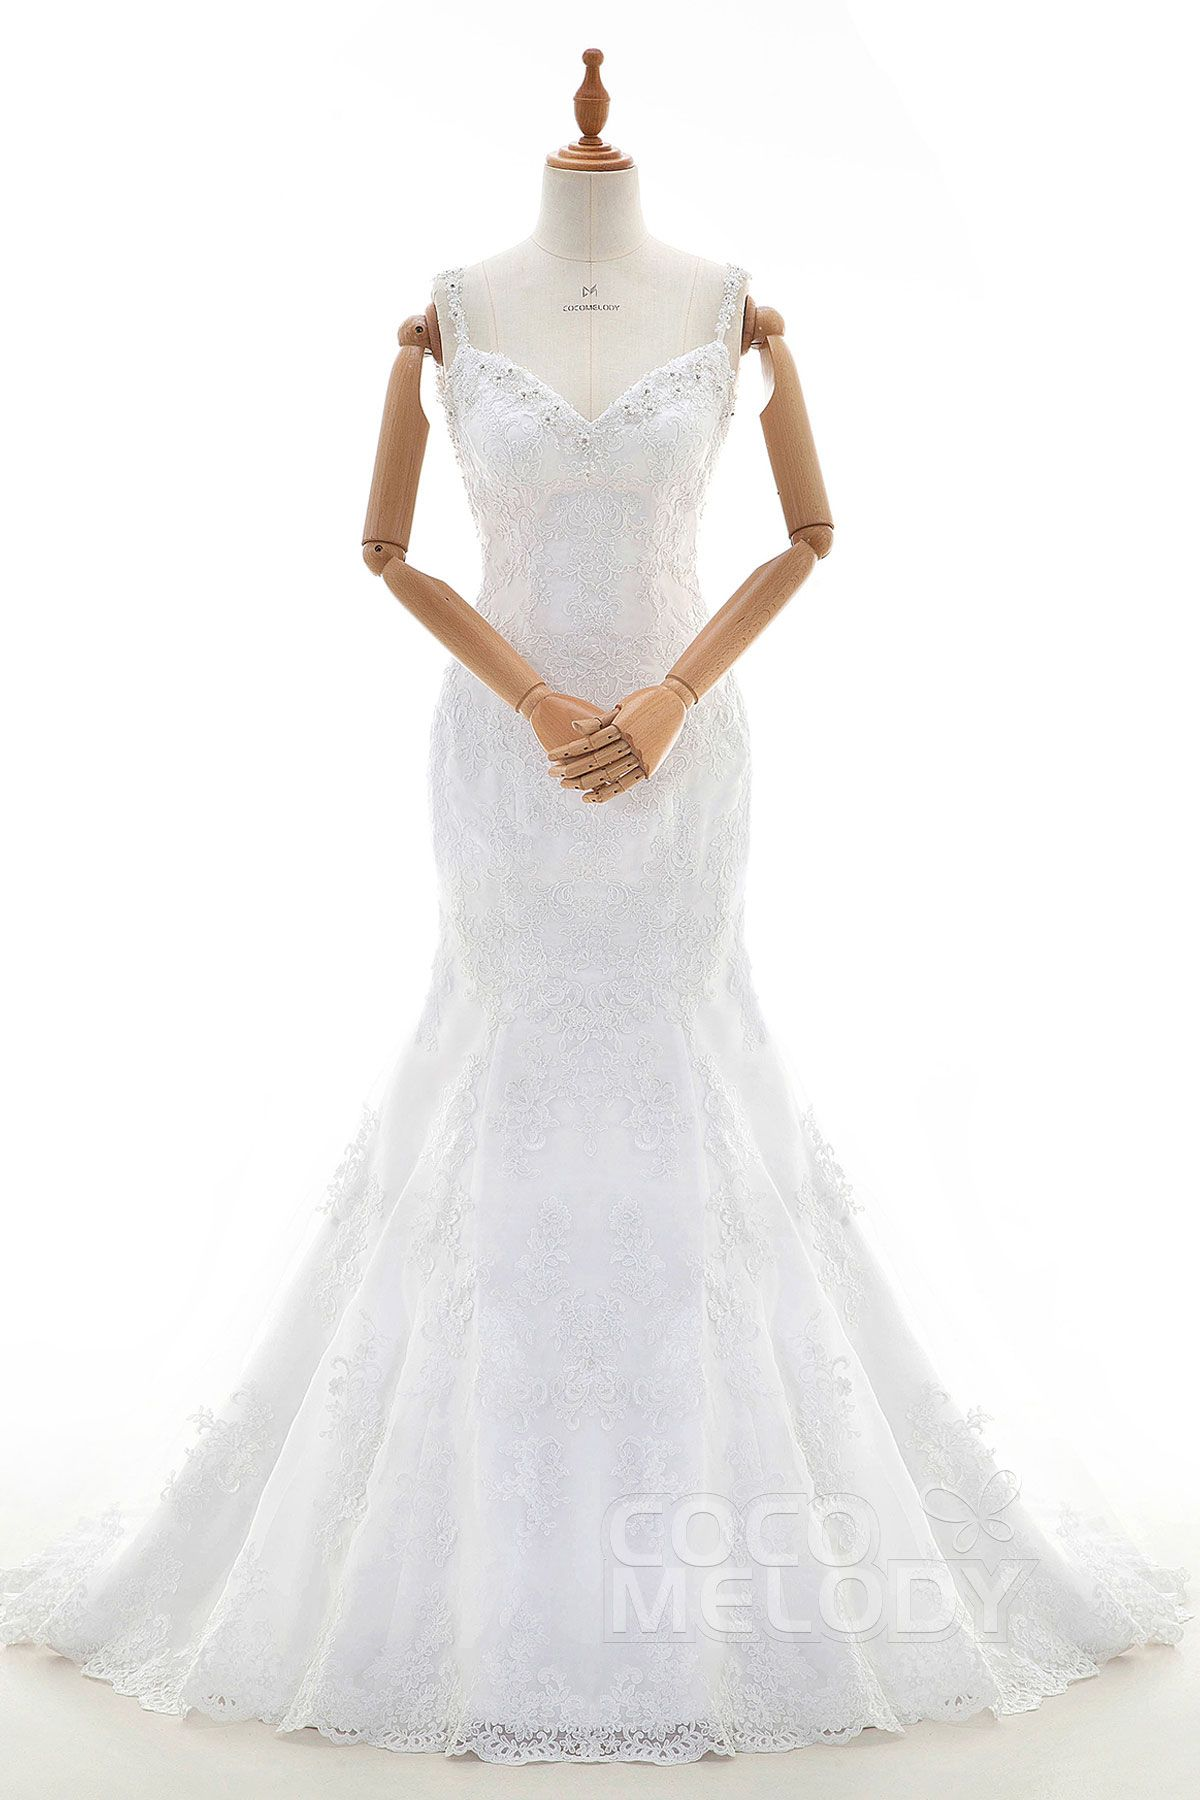 Fashion+Trumpet-Mermaid+Spaghetti+Strap+Dropped+Court+Train+Tulle+and+Lace+White+Sleeveless+Open+Back+Wedding+Dress+with+Appliques+and+Beading+LD3907